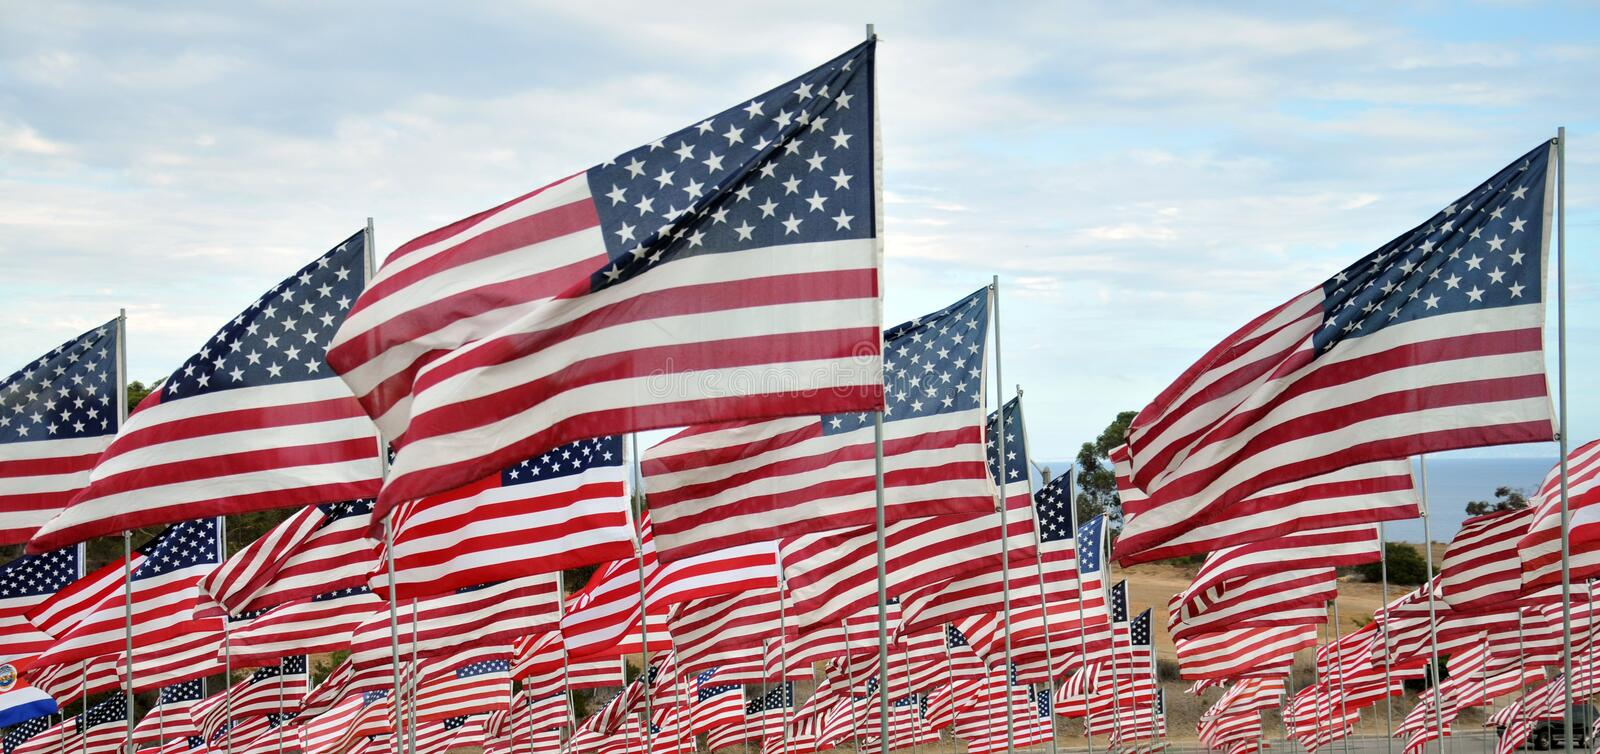 Rows of American Flags stock photo Image of free, forces - 59459656